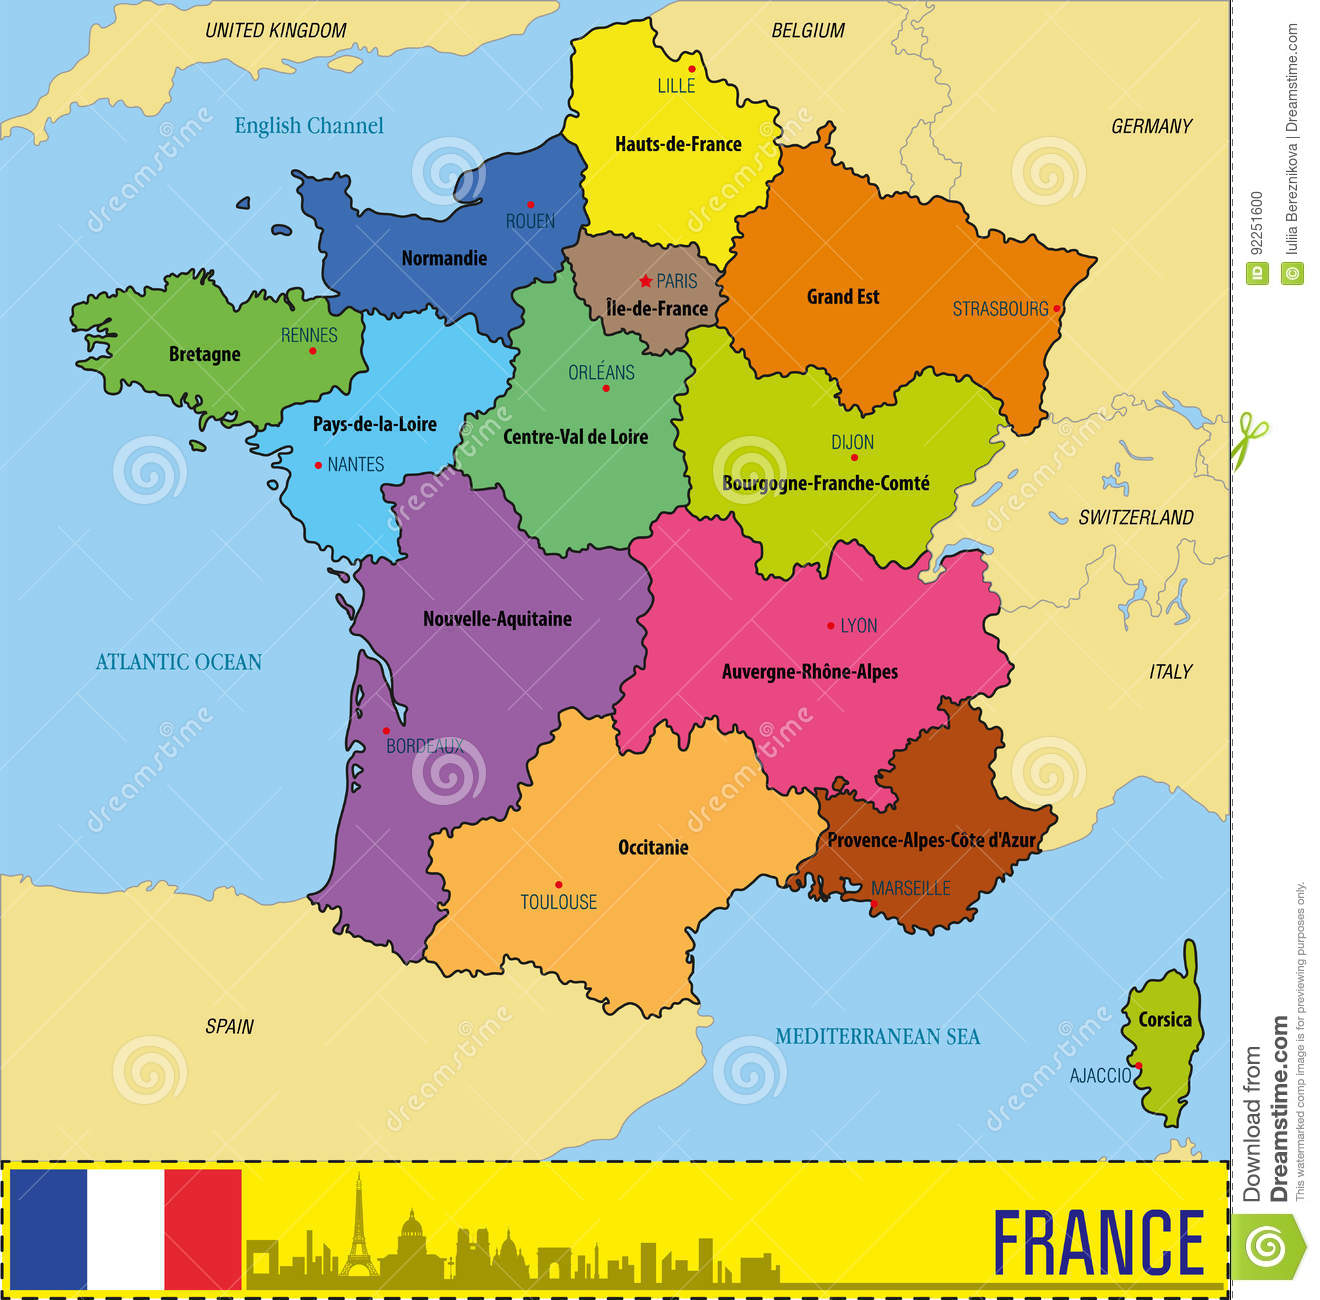 Regions In France Map.France Map With Regions And Their Capitals Stock Vector